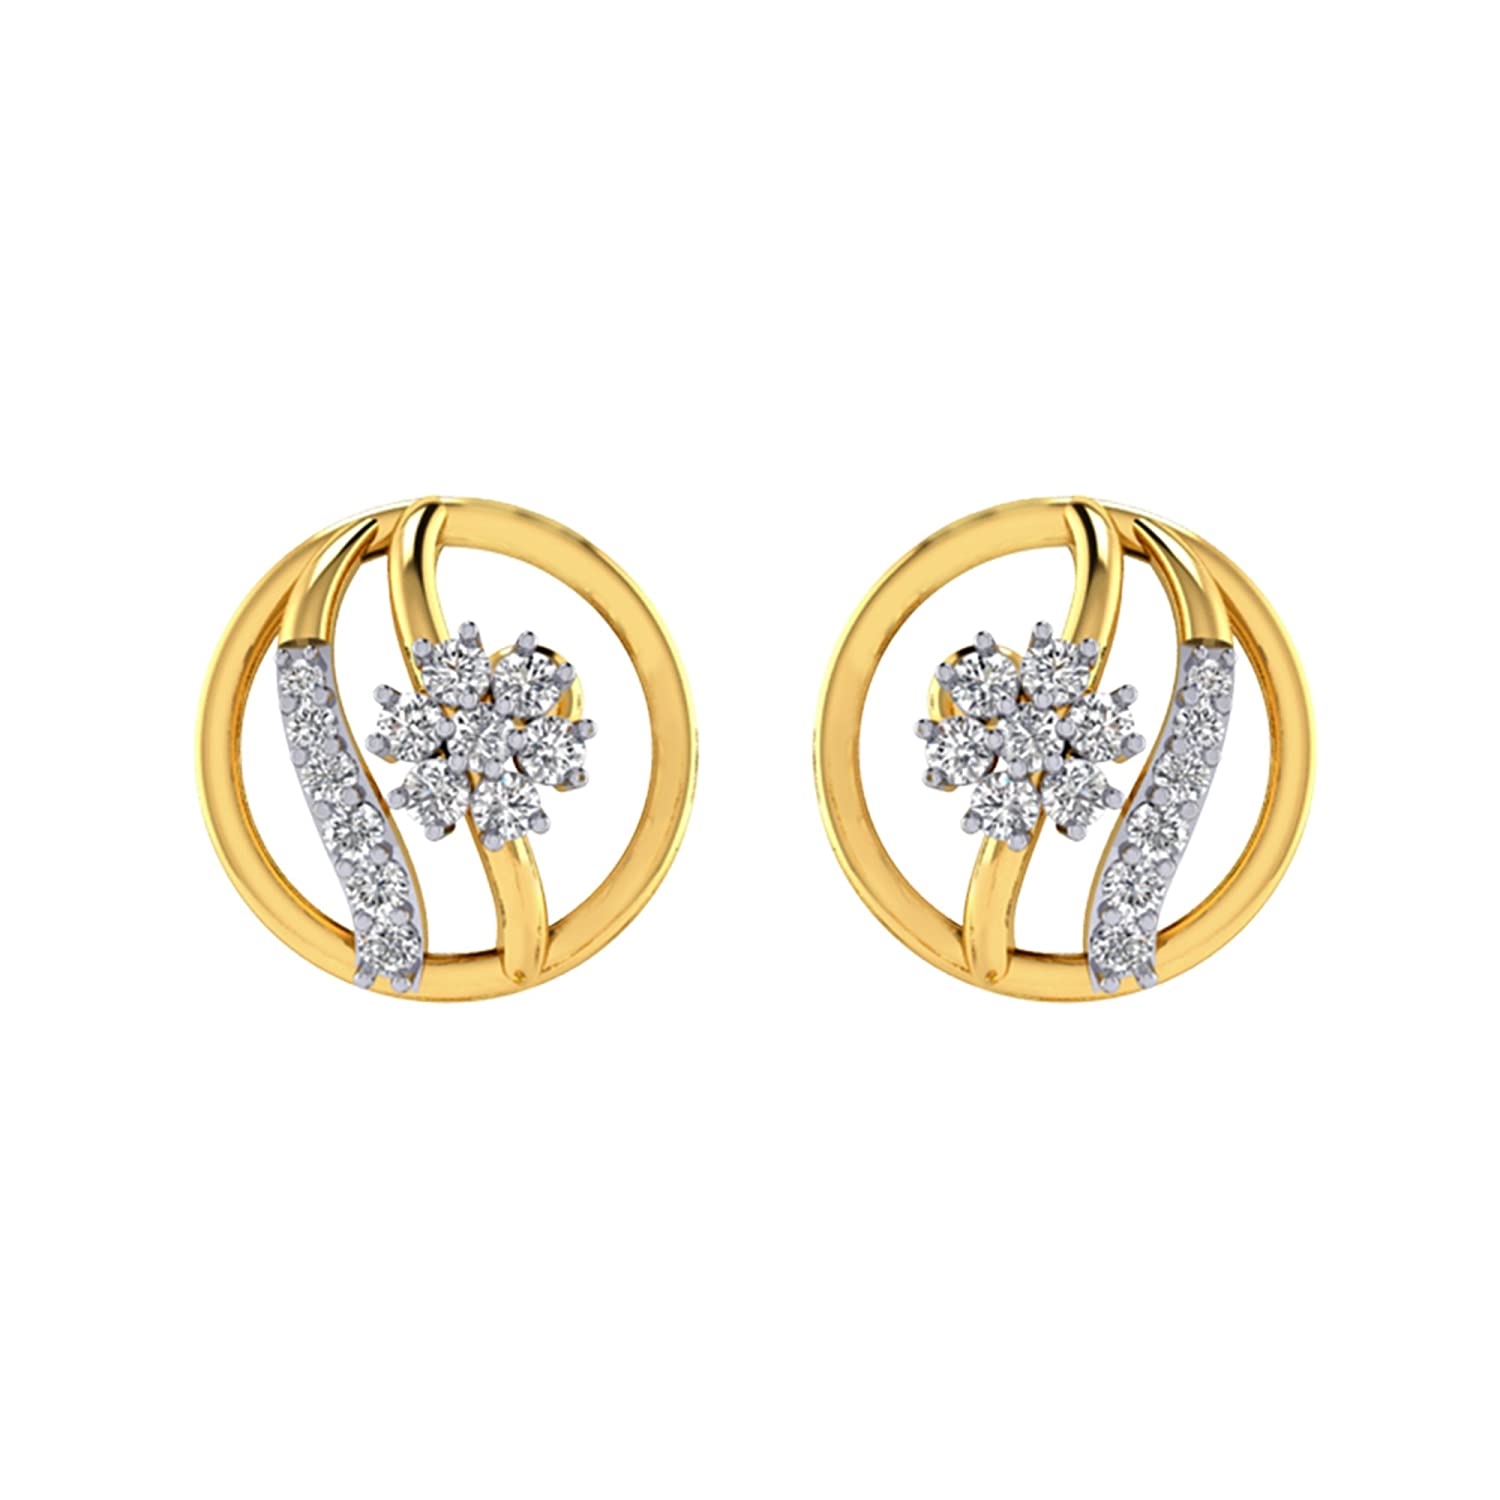 Buy Cygnus Cluster Collection 18k 750 Yellow Gold and Diamond Stud